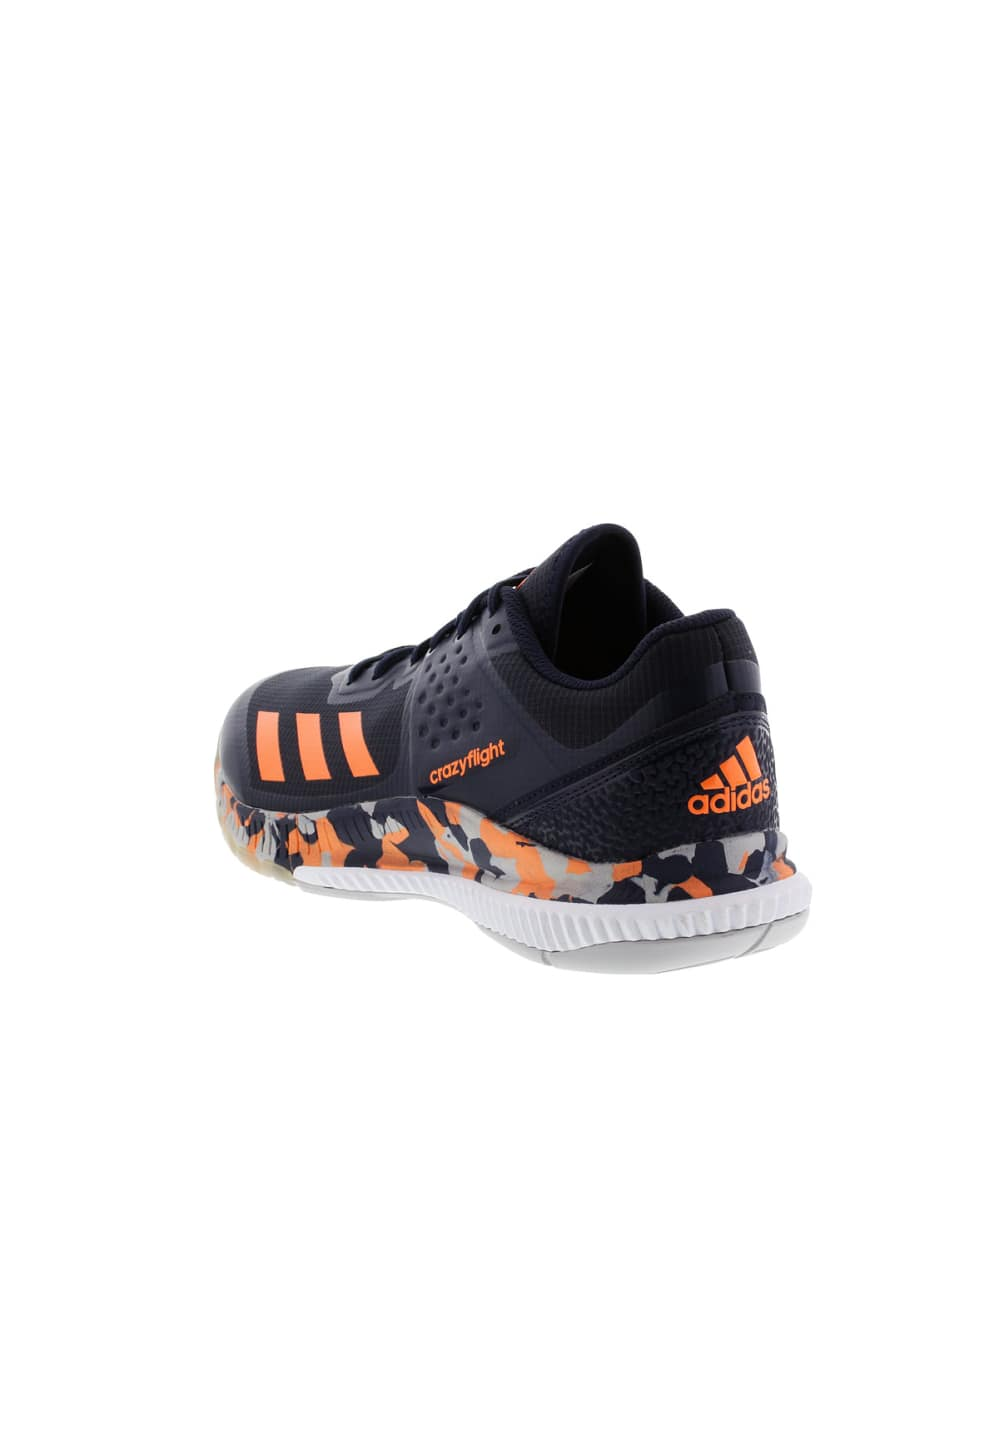 reputable site 8a58d e350e adidas Crazyflight Bounce - Volleyball shoes for Men - Multicolor